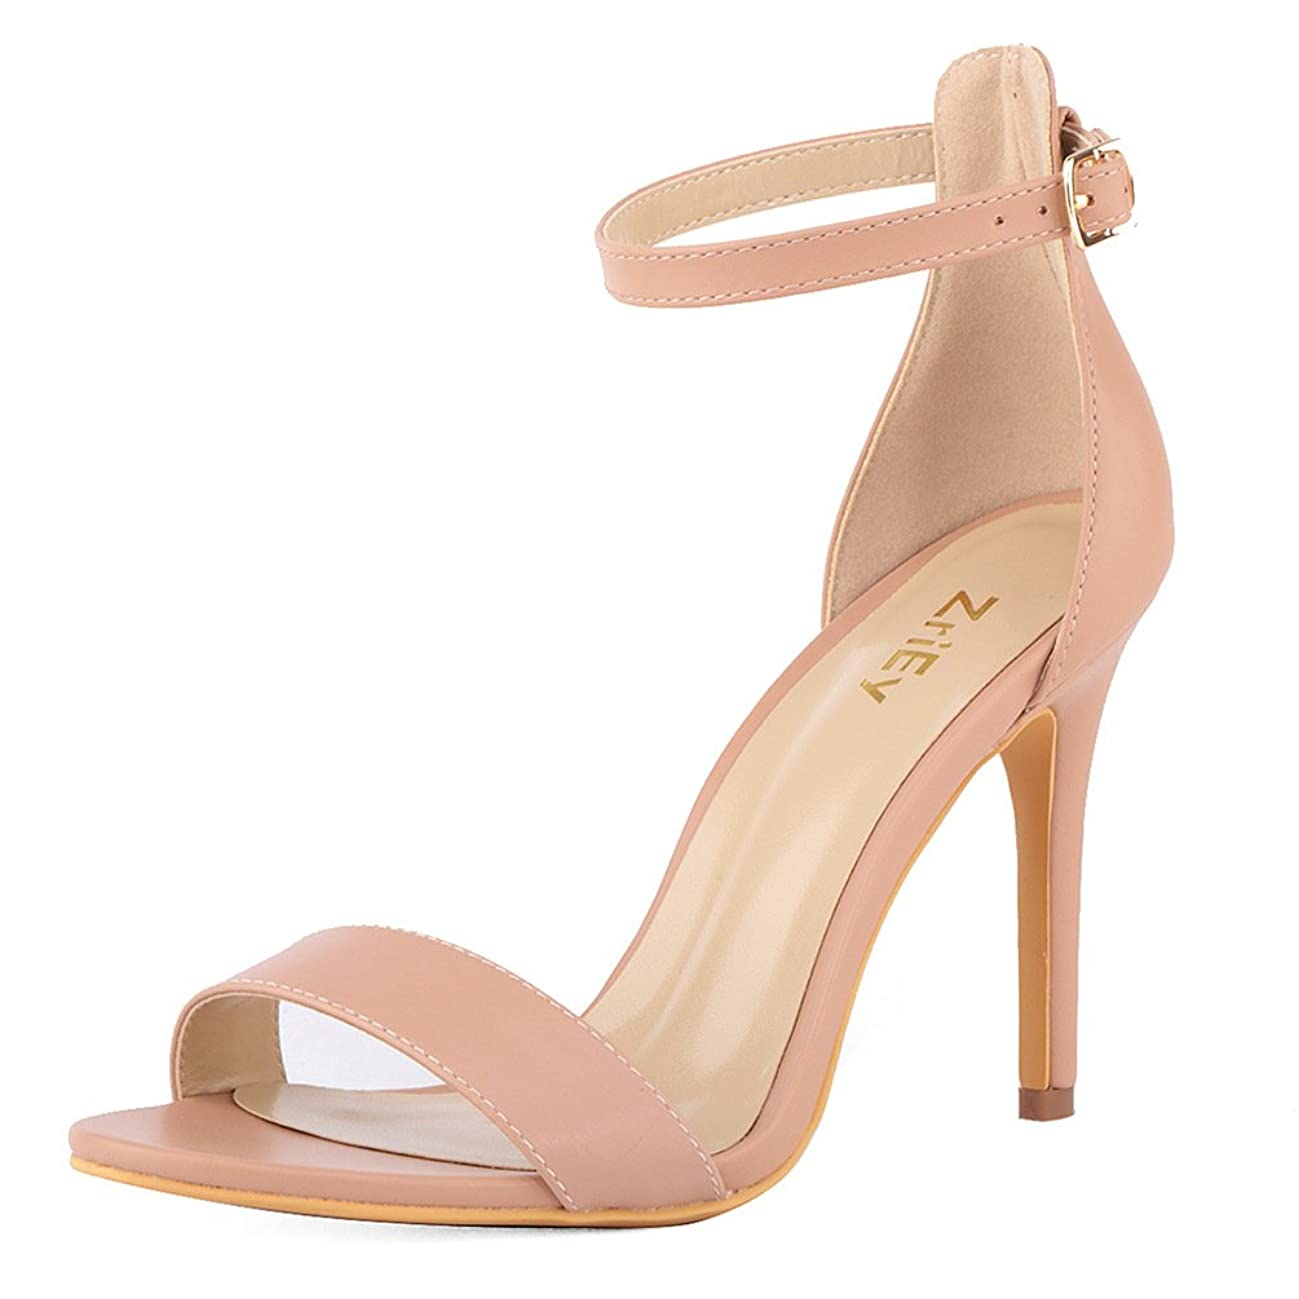 ZriEy Women's Heeled Sandals Ankle Strap High Heels 7CM Open Toe Mid Heel Sandals Bridal Party Shoes